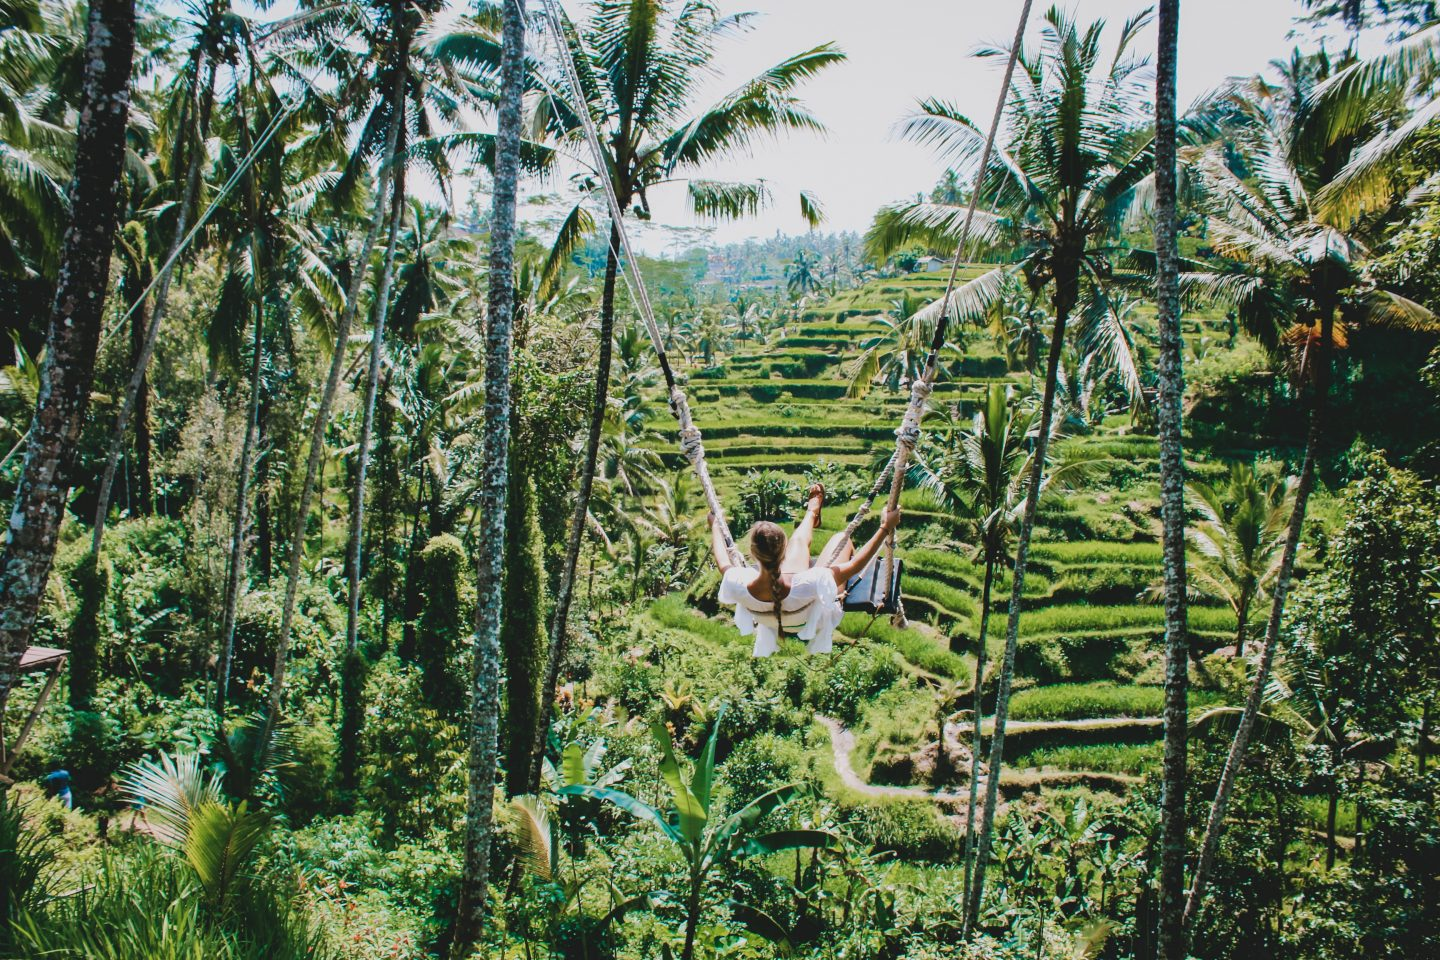 Swinging over the rice terraces in Ubud, Bali!